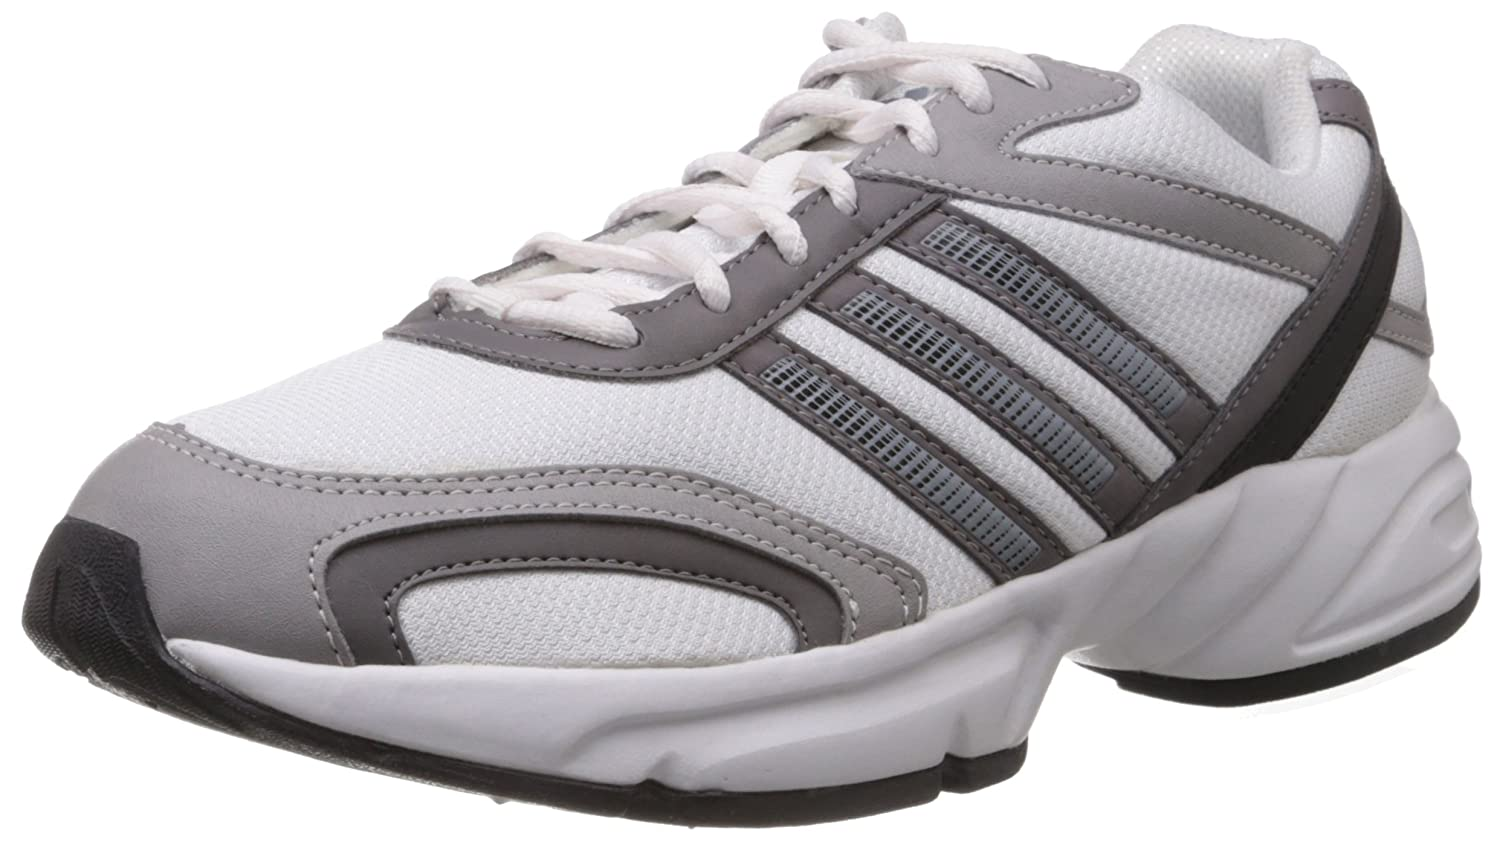 Desma White and Grey Running Shoes